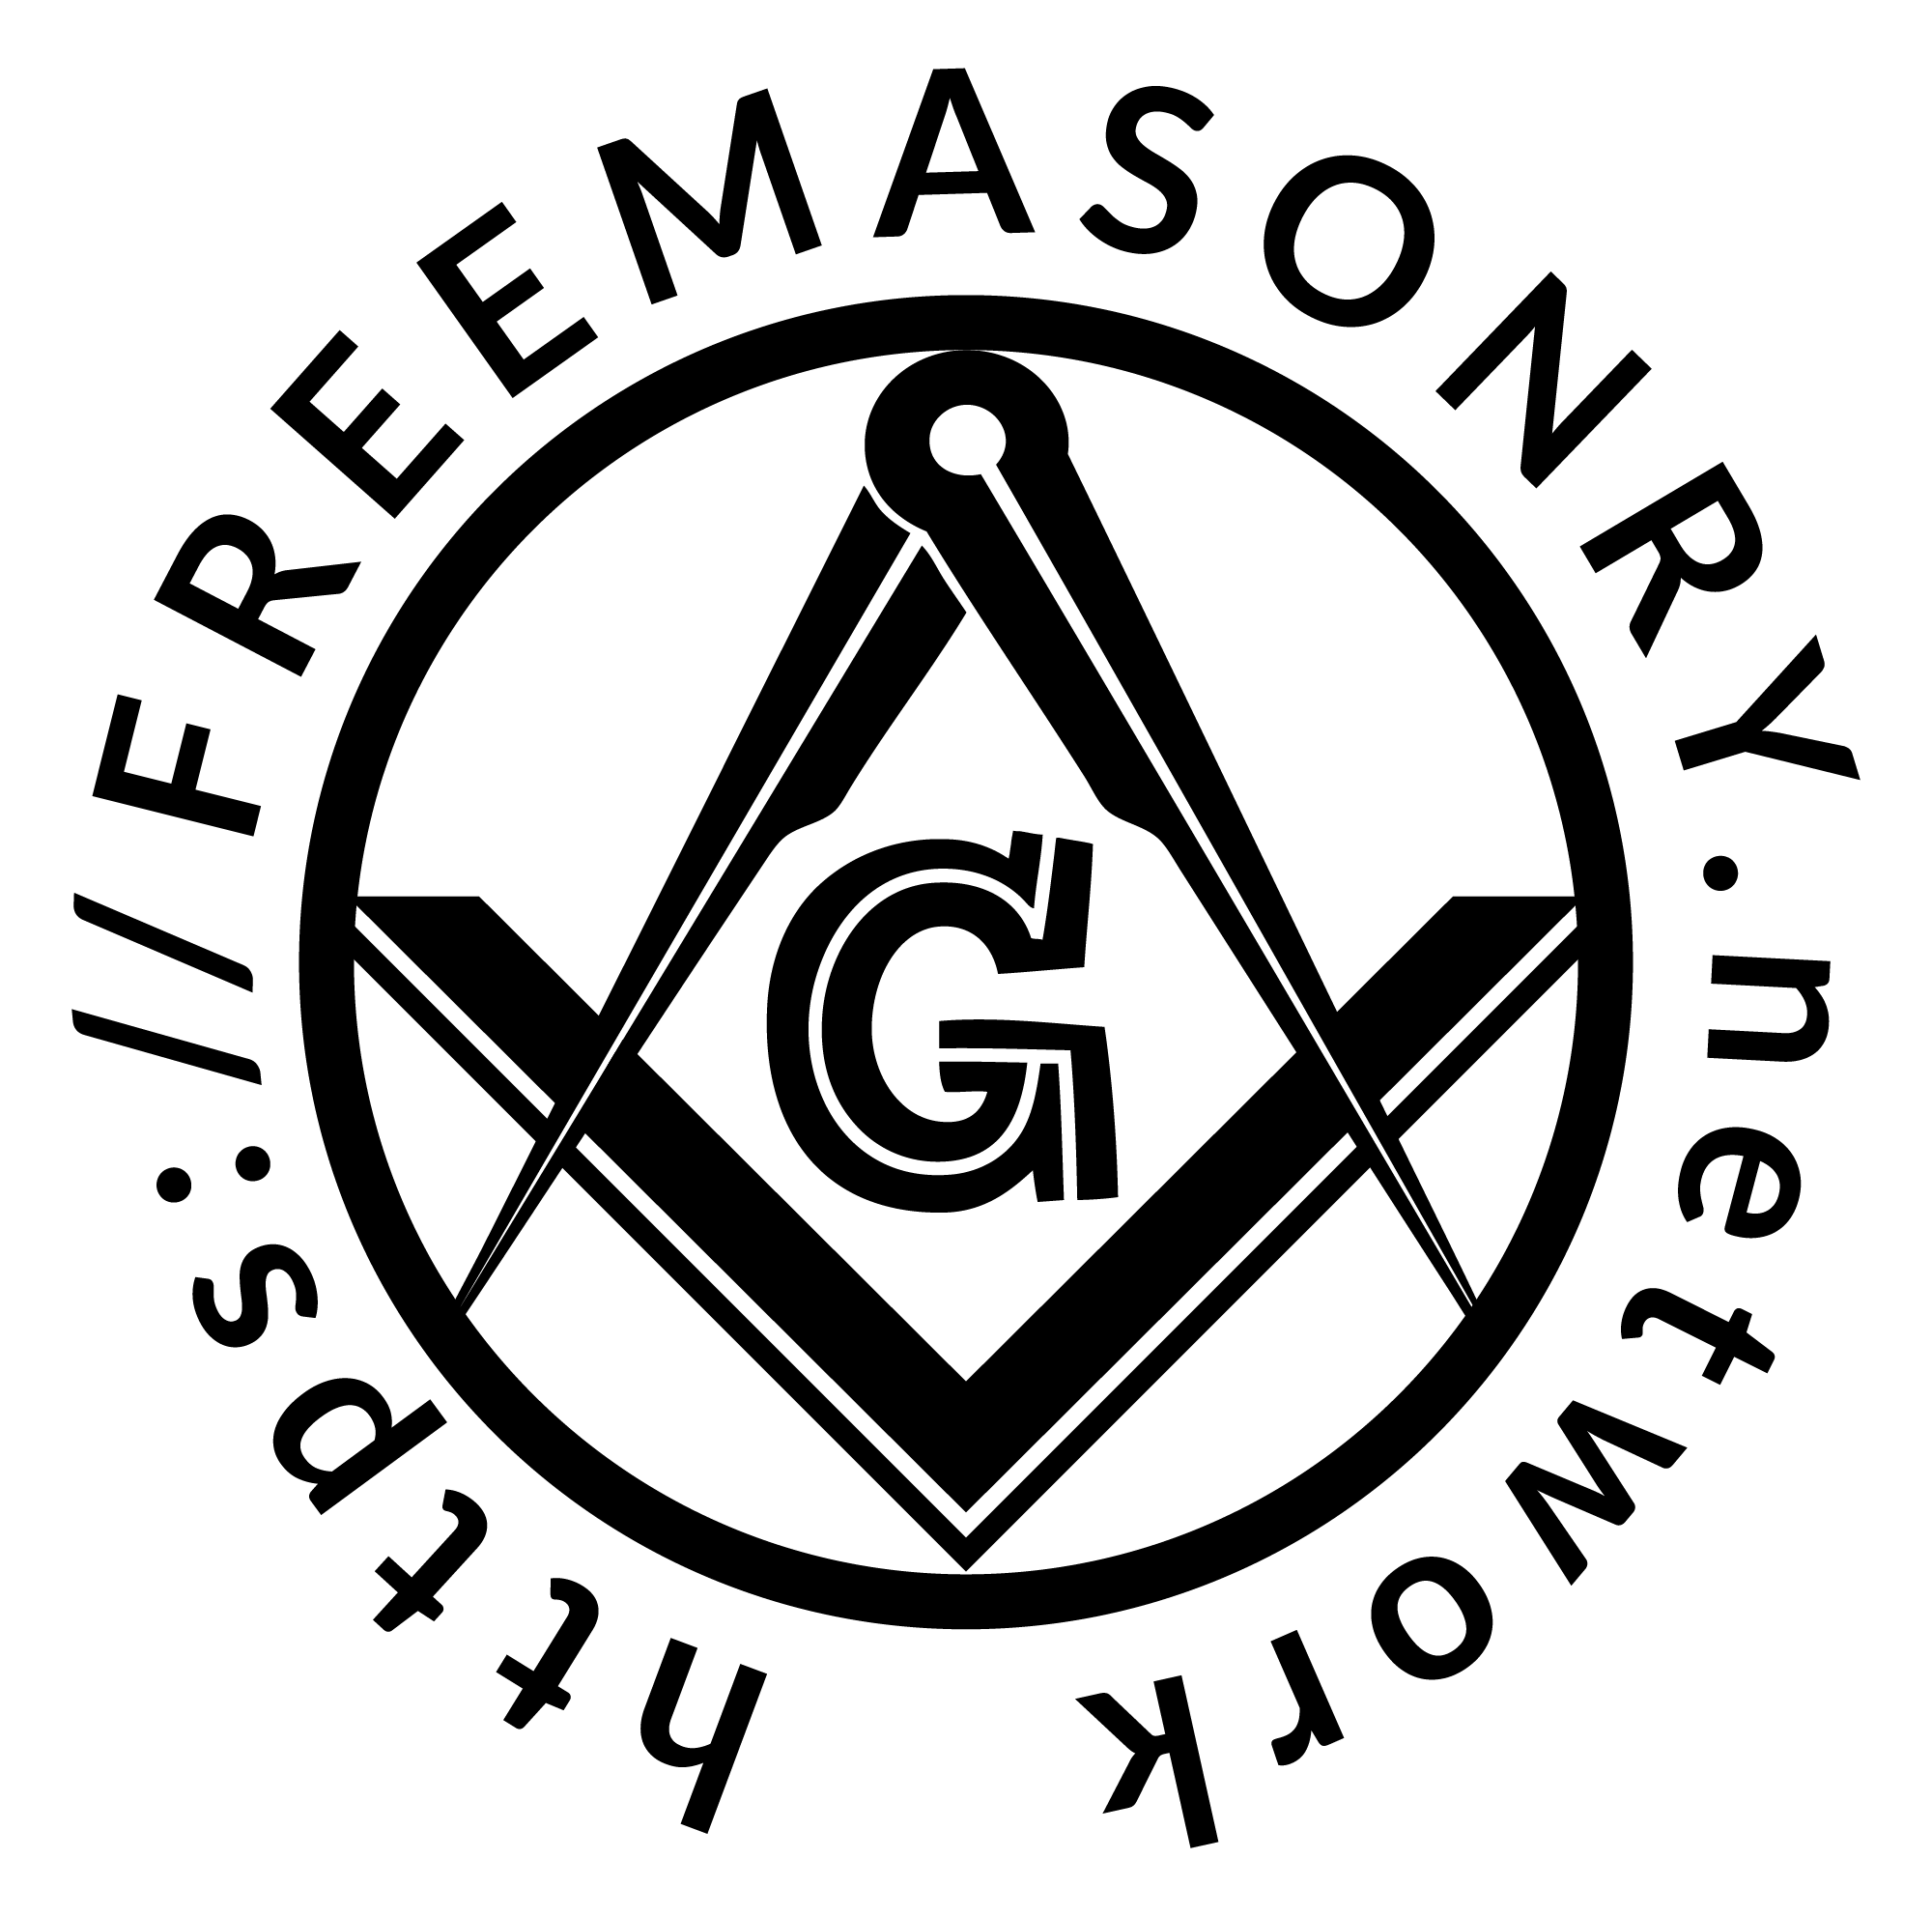 LIBERAL FREEMASONRY IN FRANCE